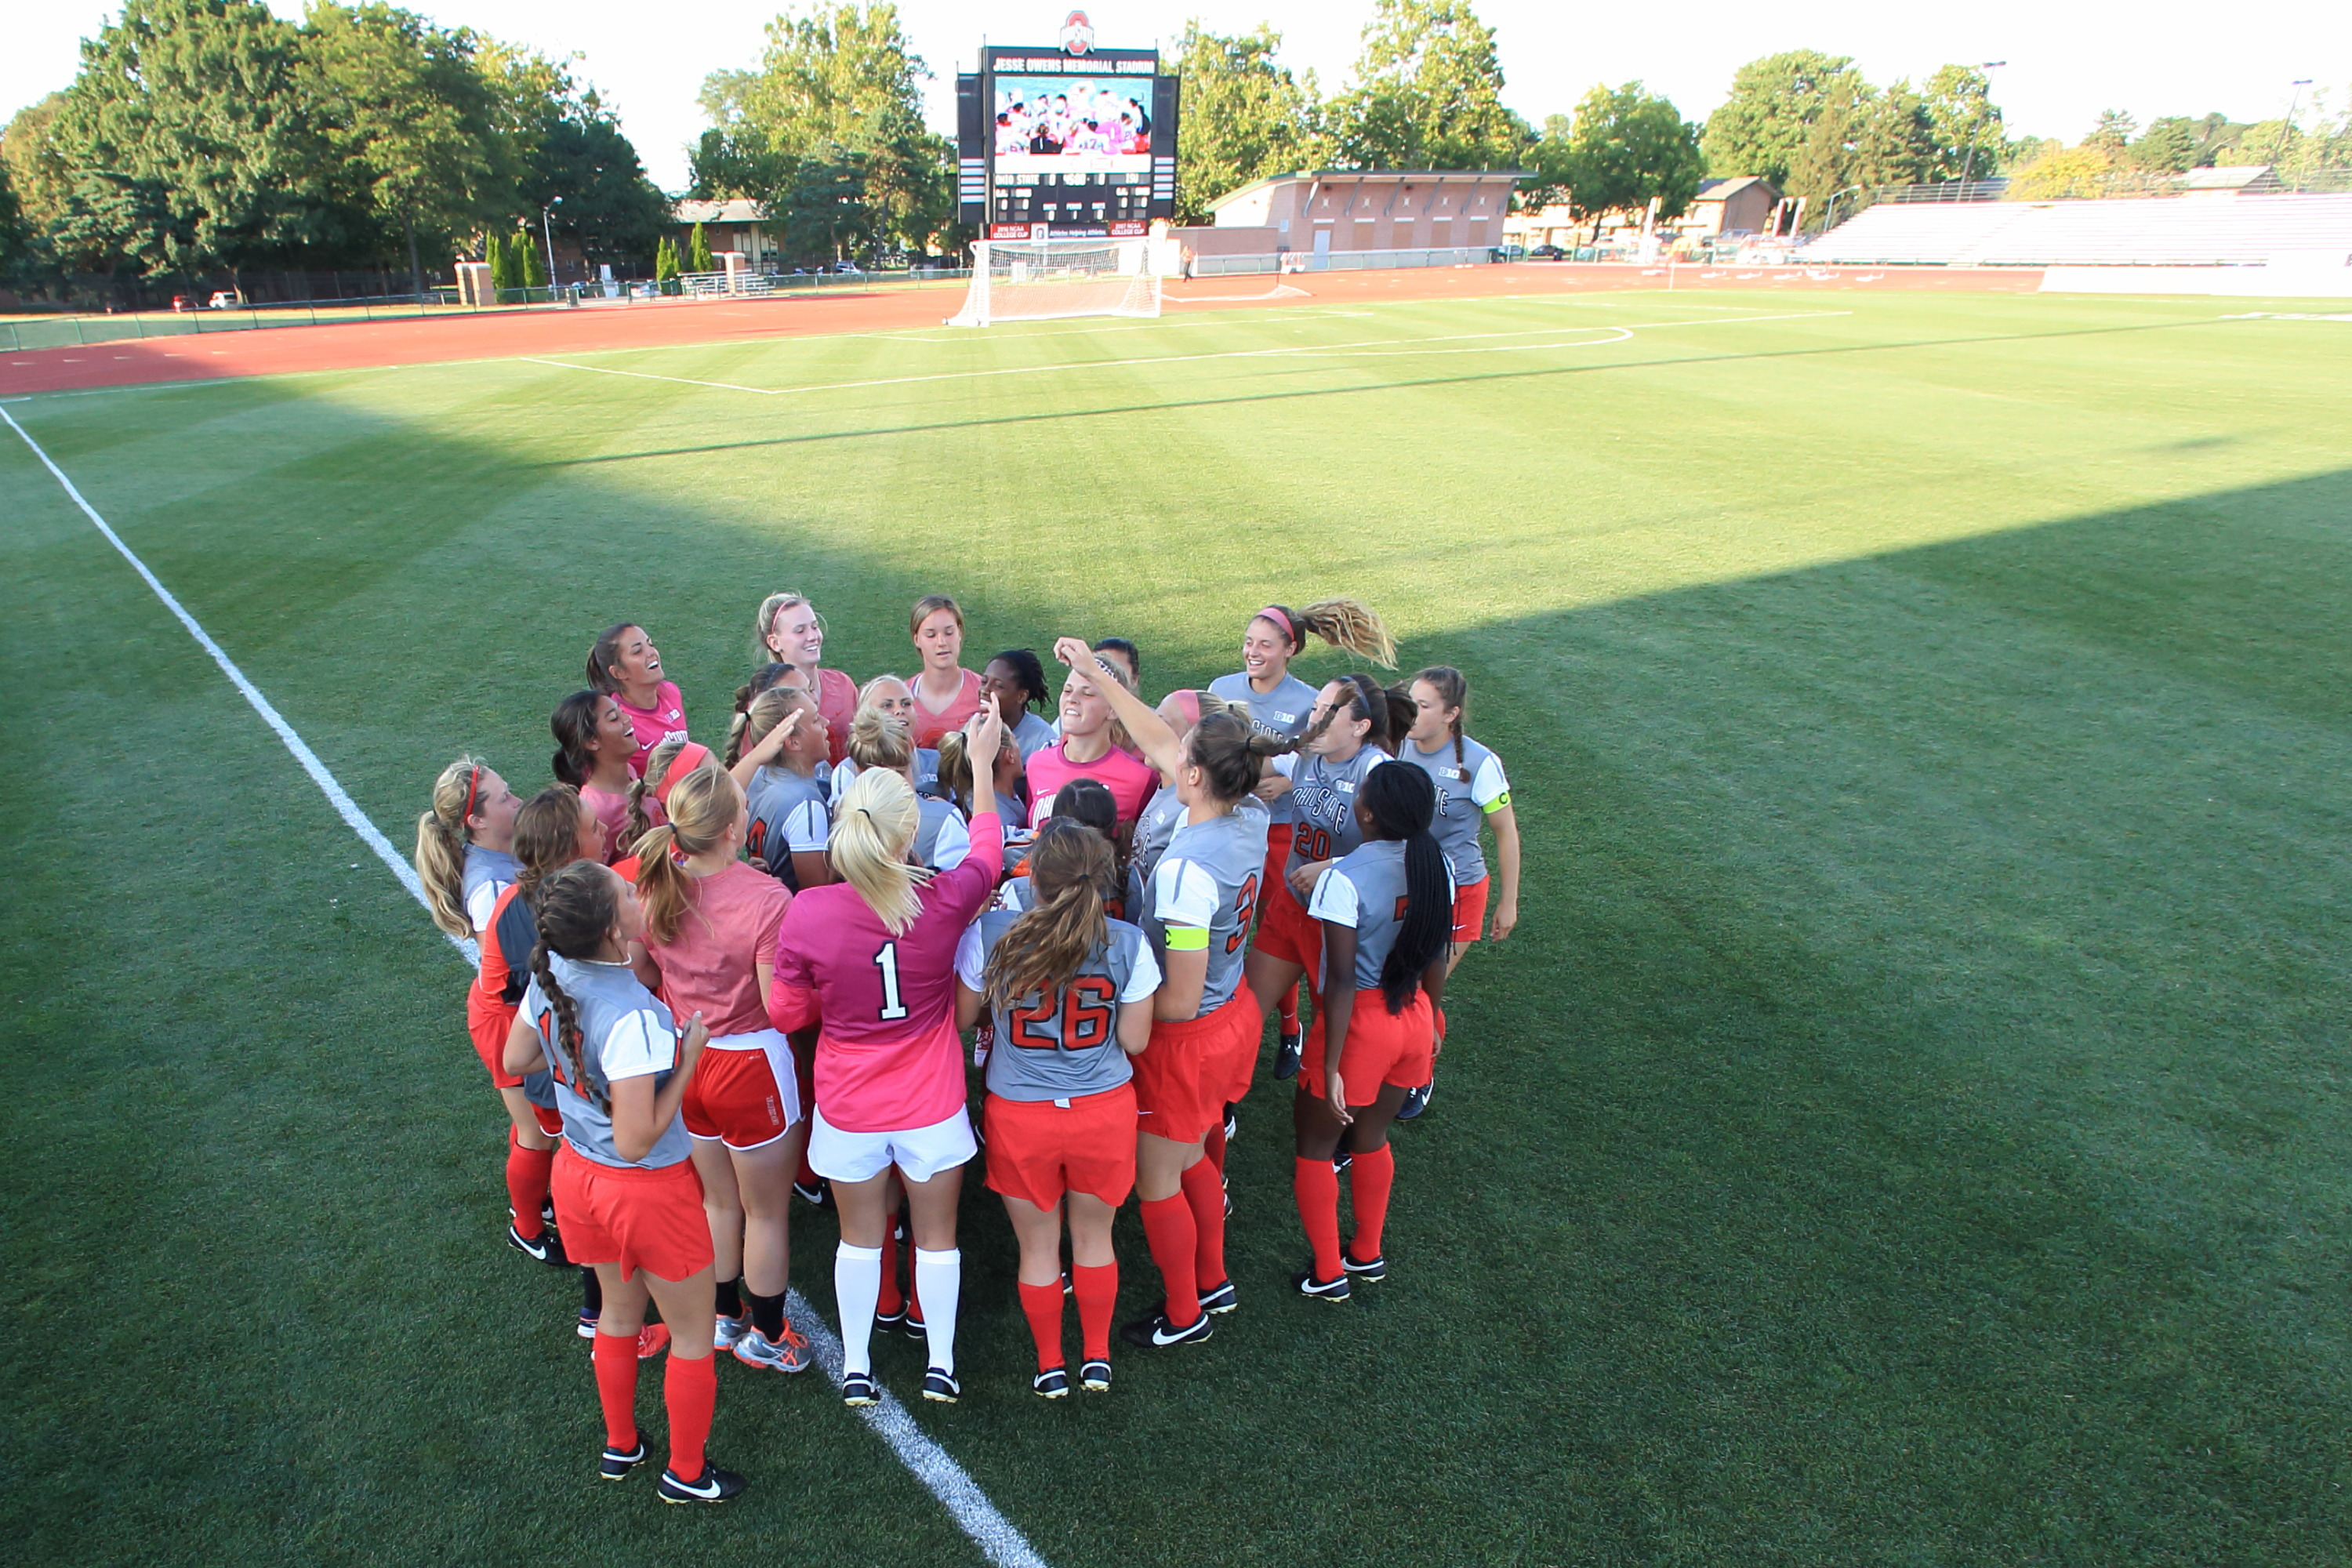 The Ohio State University women's Soccer team defeat Illinois State University 6-2 in their home opener for the 2015 season. Jesse Owens Memorial Stadium, Columbus, OH. August 21, 2015